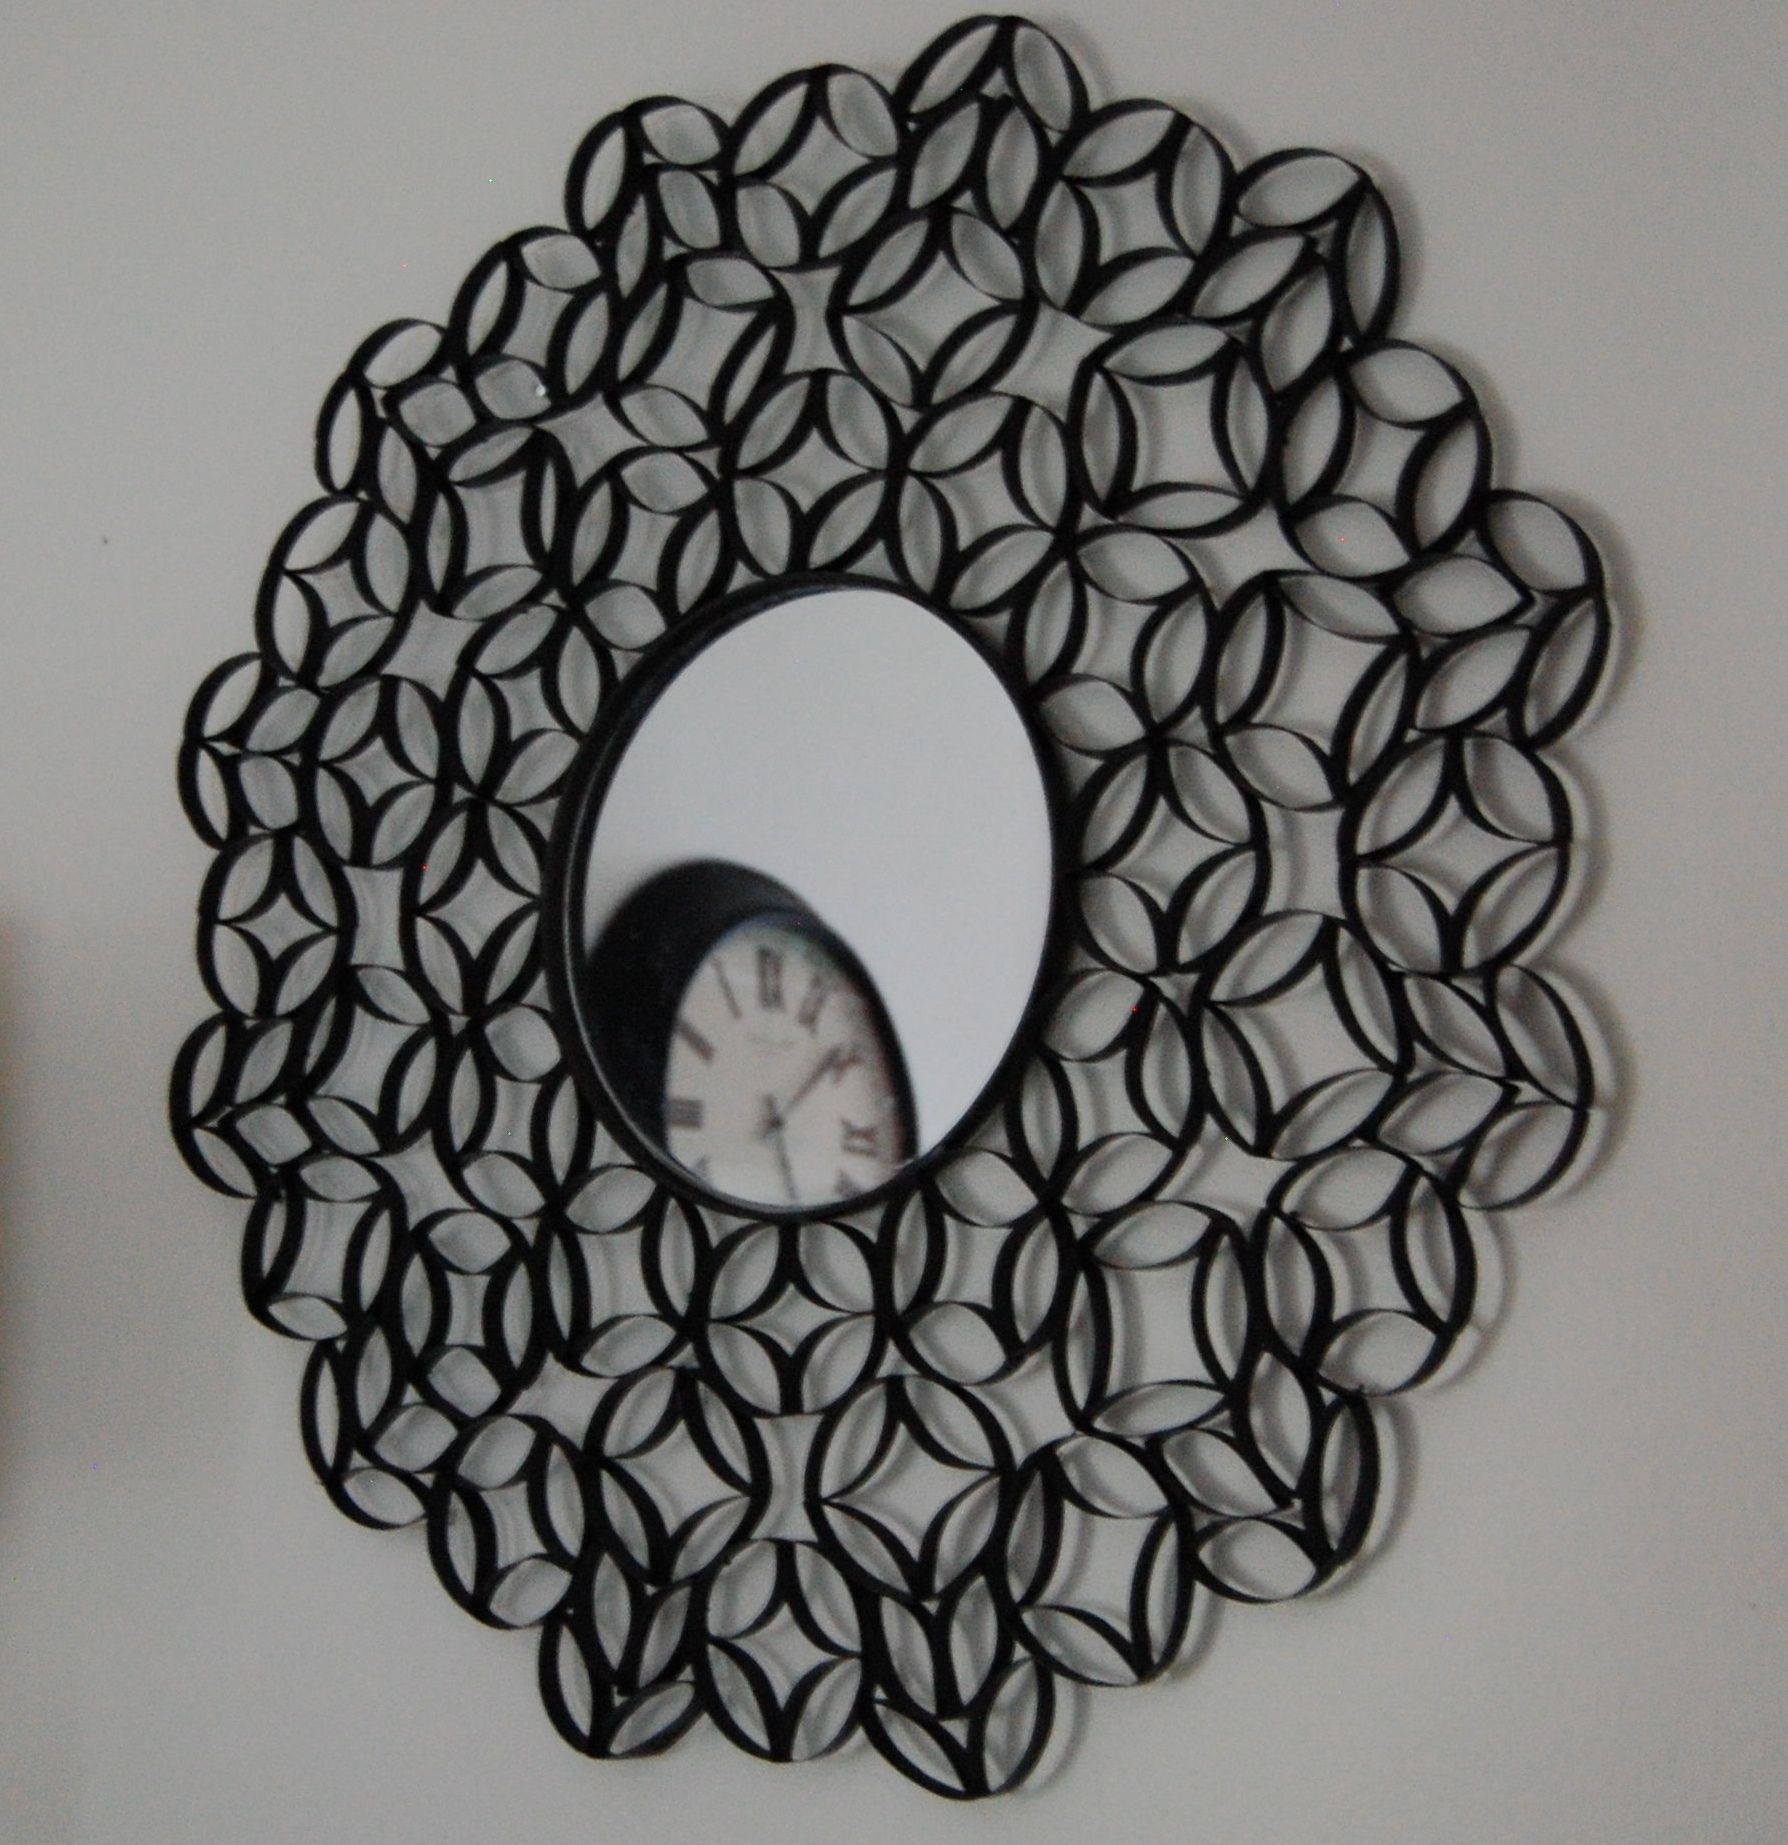 Toilet Paper Roll Wall Art Just Spray Paint And Voila! | Wall Art With Regard To Most Popular Toilet Paper Roll Wall Art (View 6 of 20)